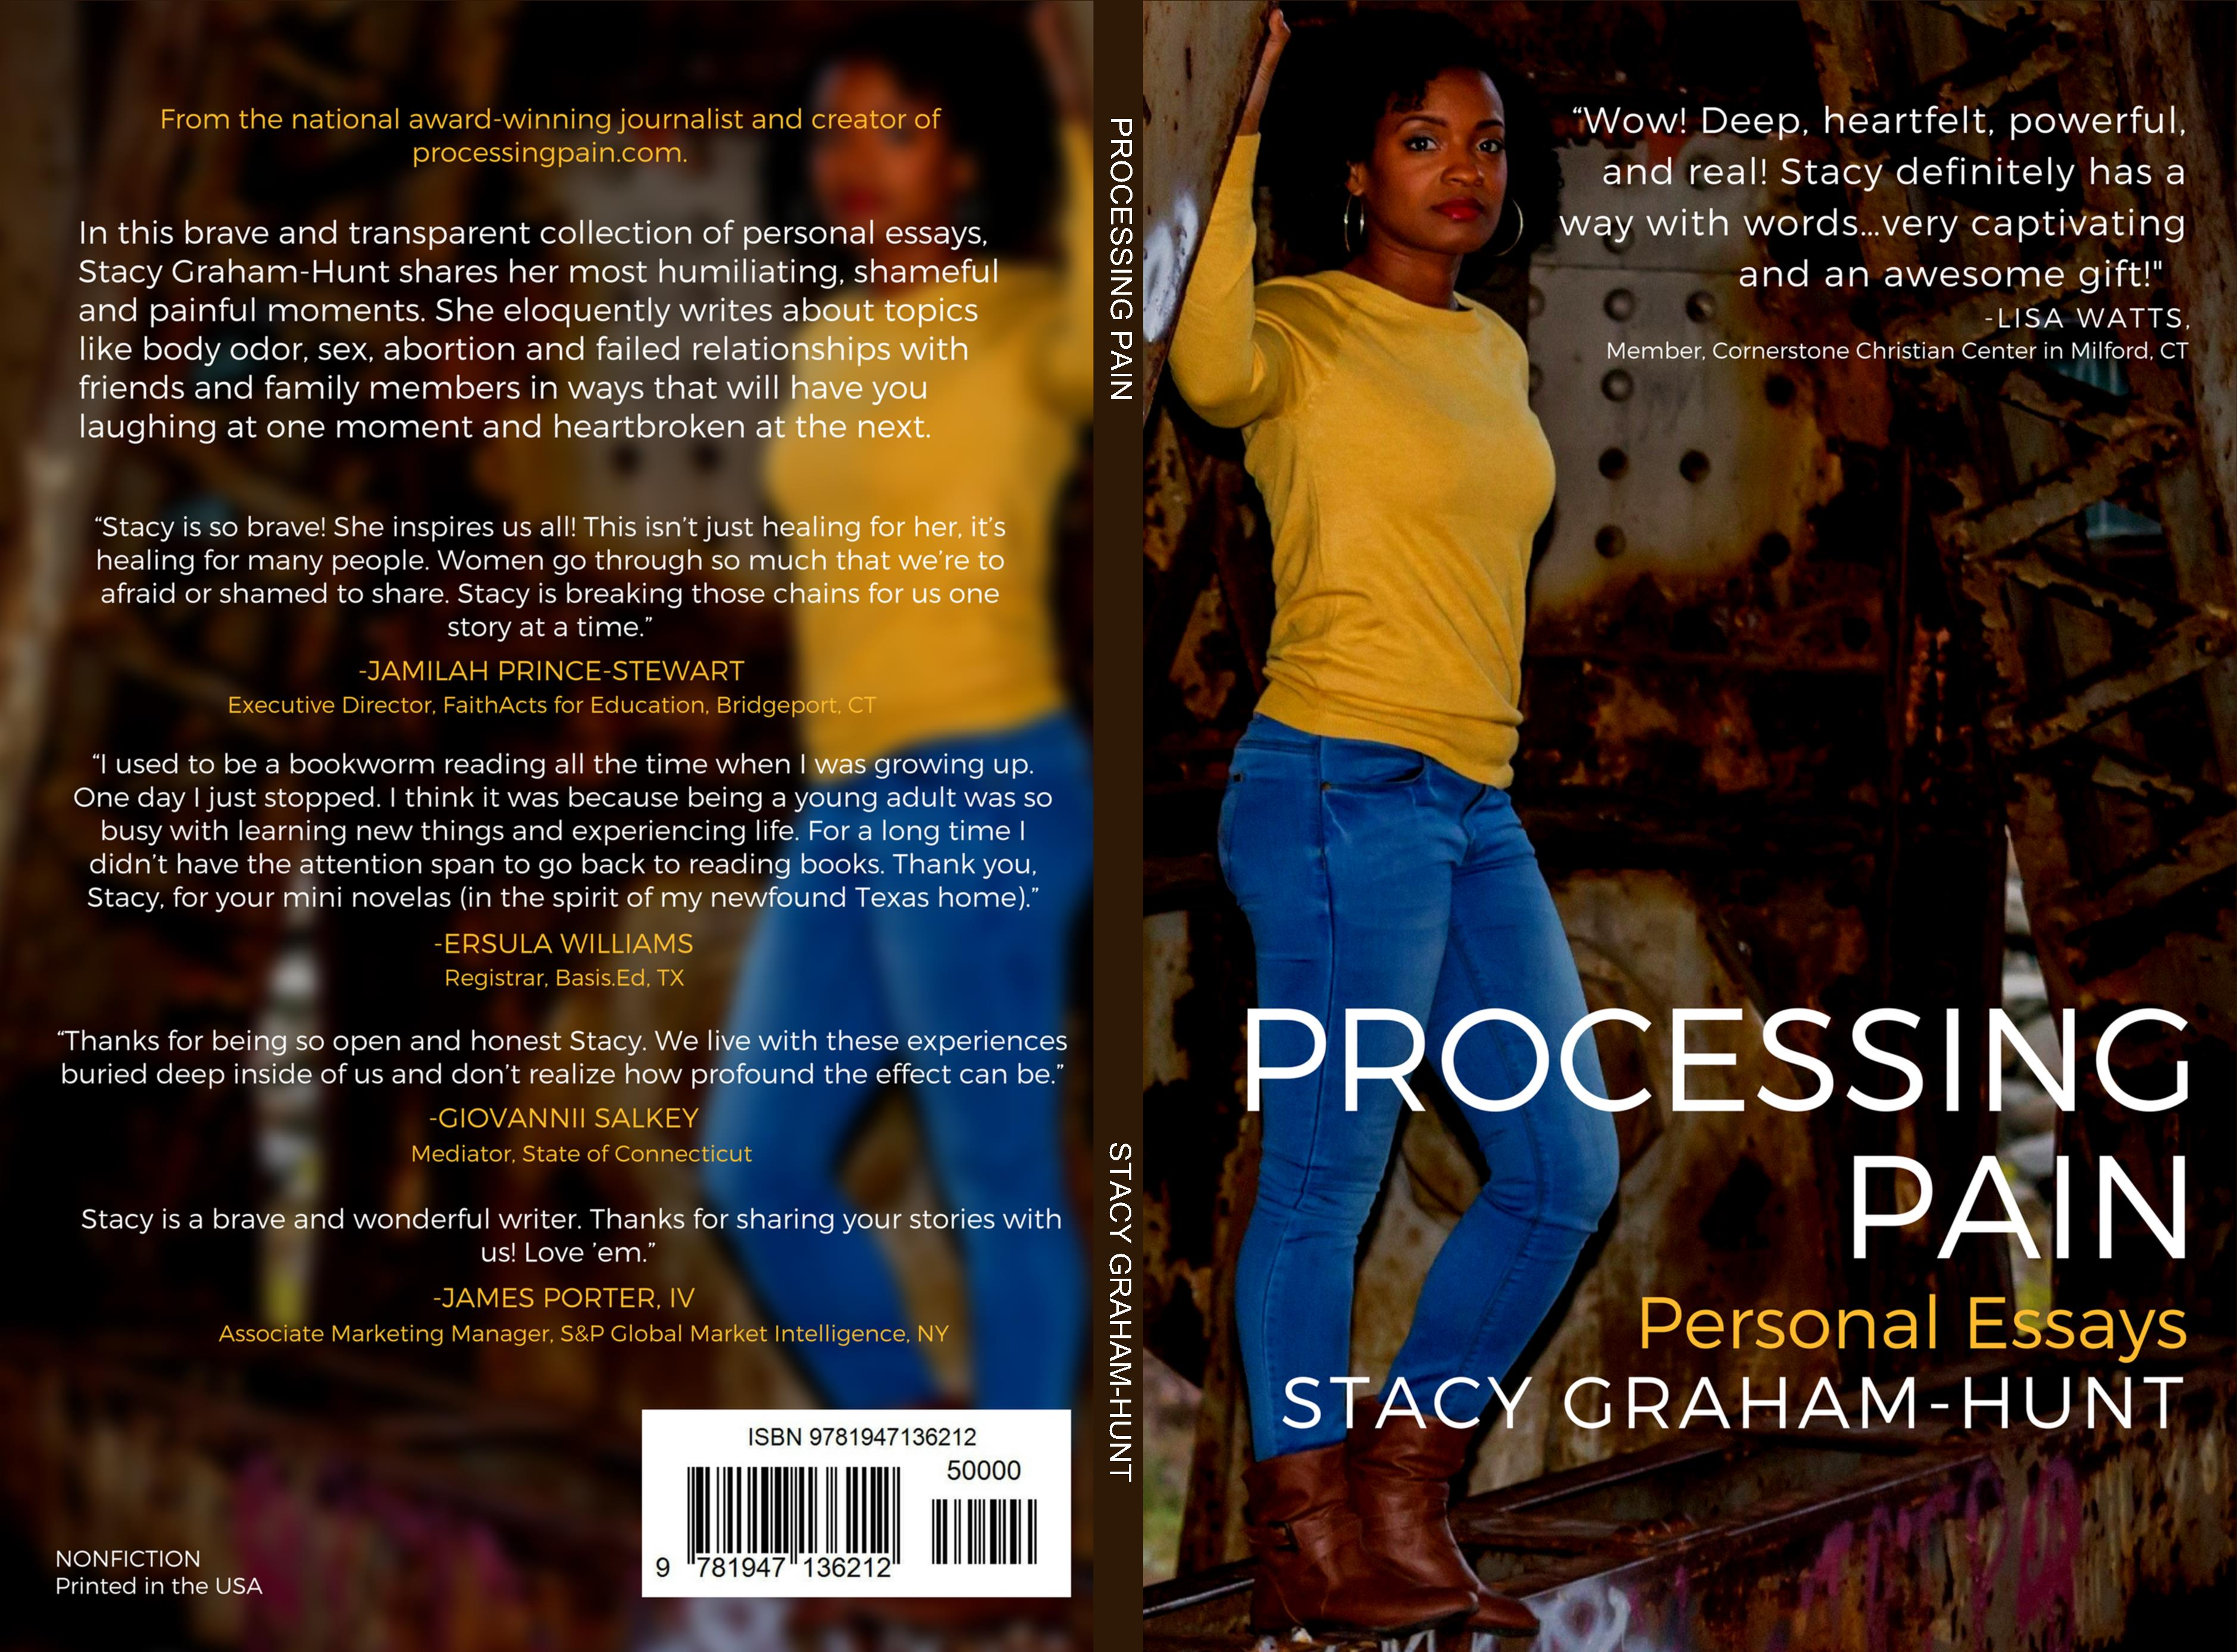 Processing Pain cover image